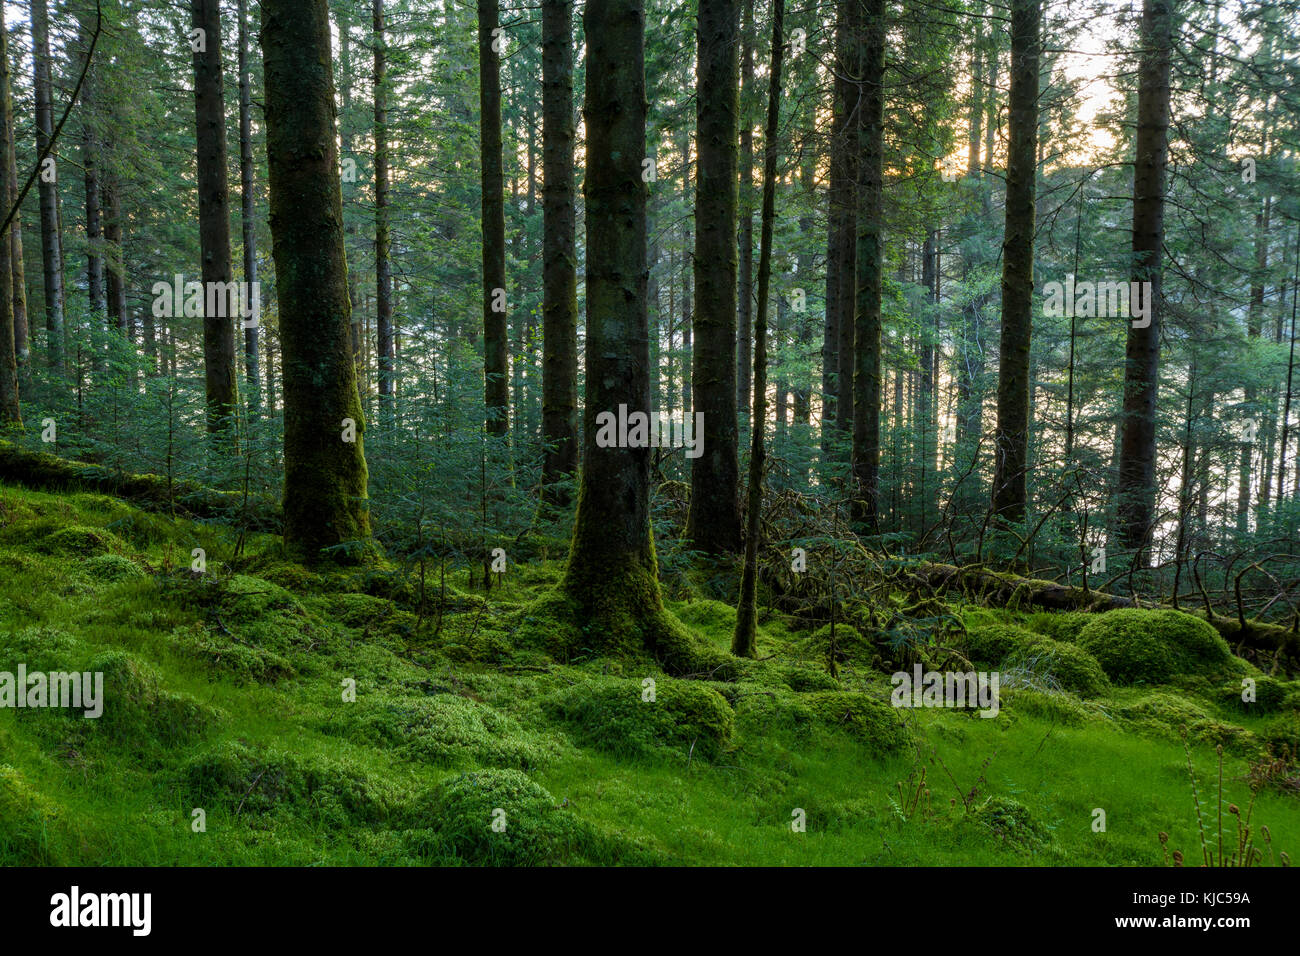 Conifer forest at dusk at Loch Awe in Argyll and Bute, Scotland - Stock Image